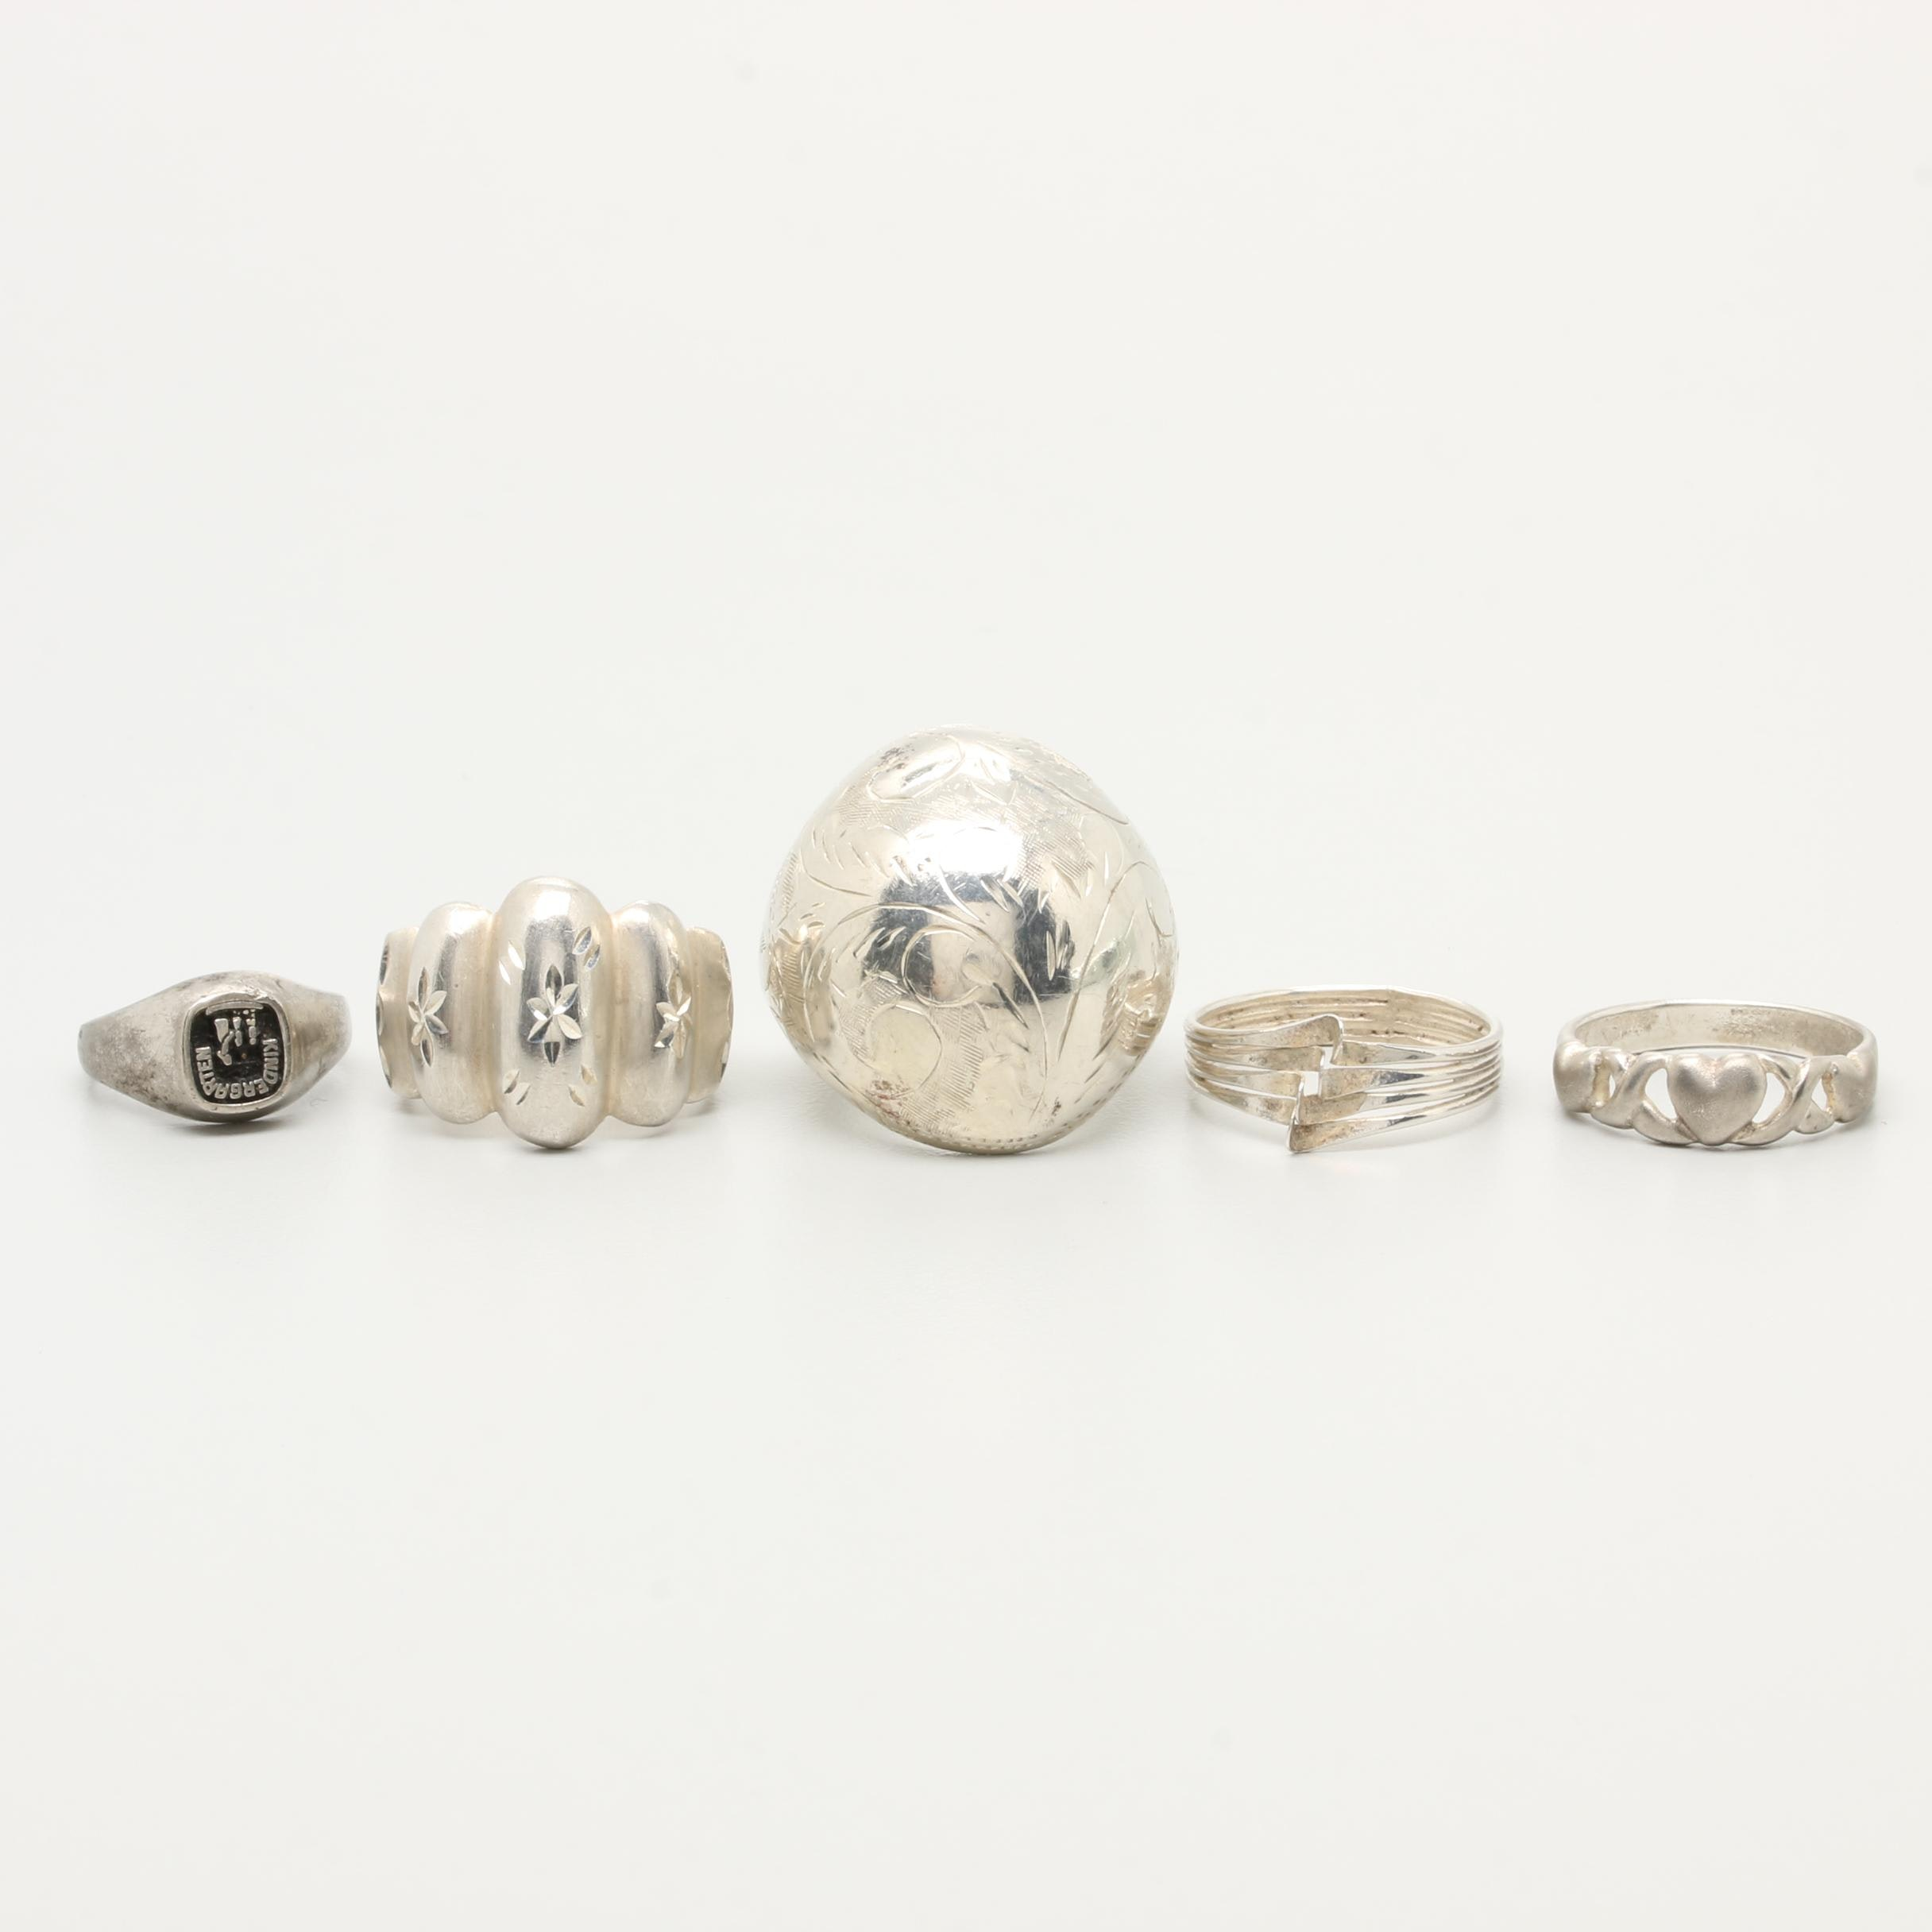 Sterling Silver Ring Assortment Including Heart and Floral Motifs